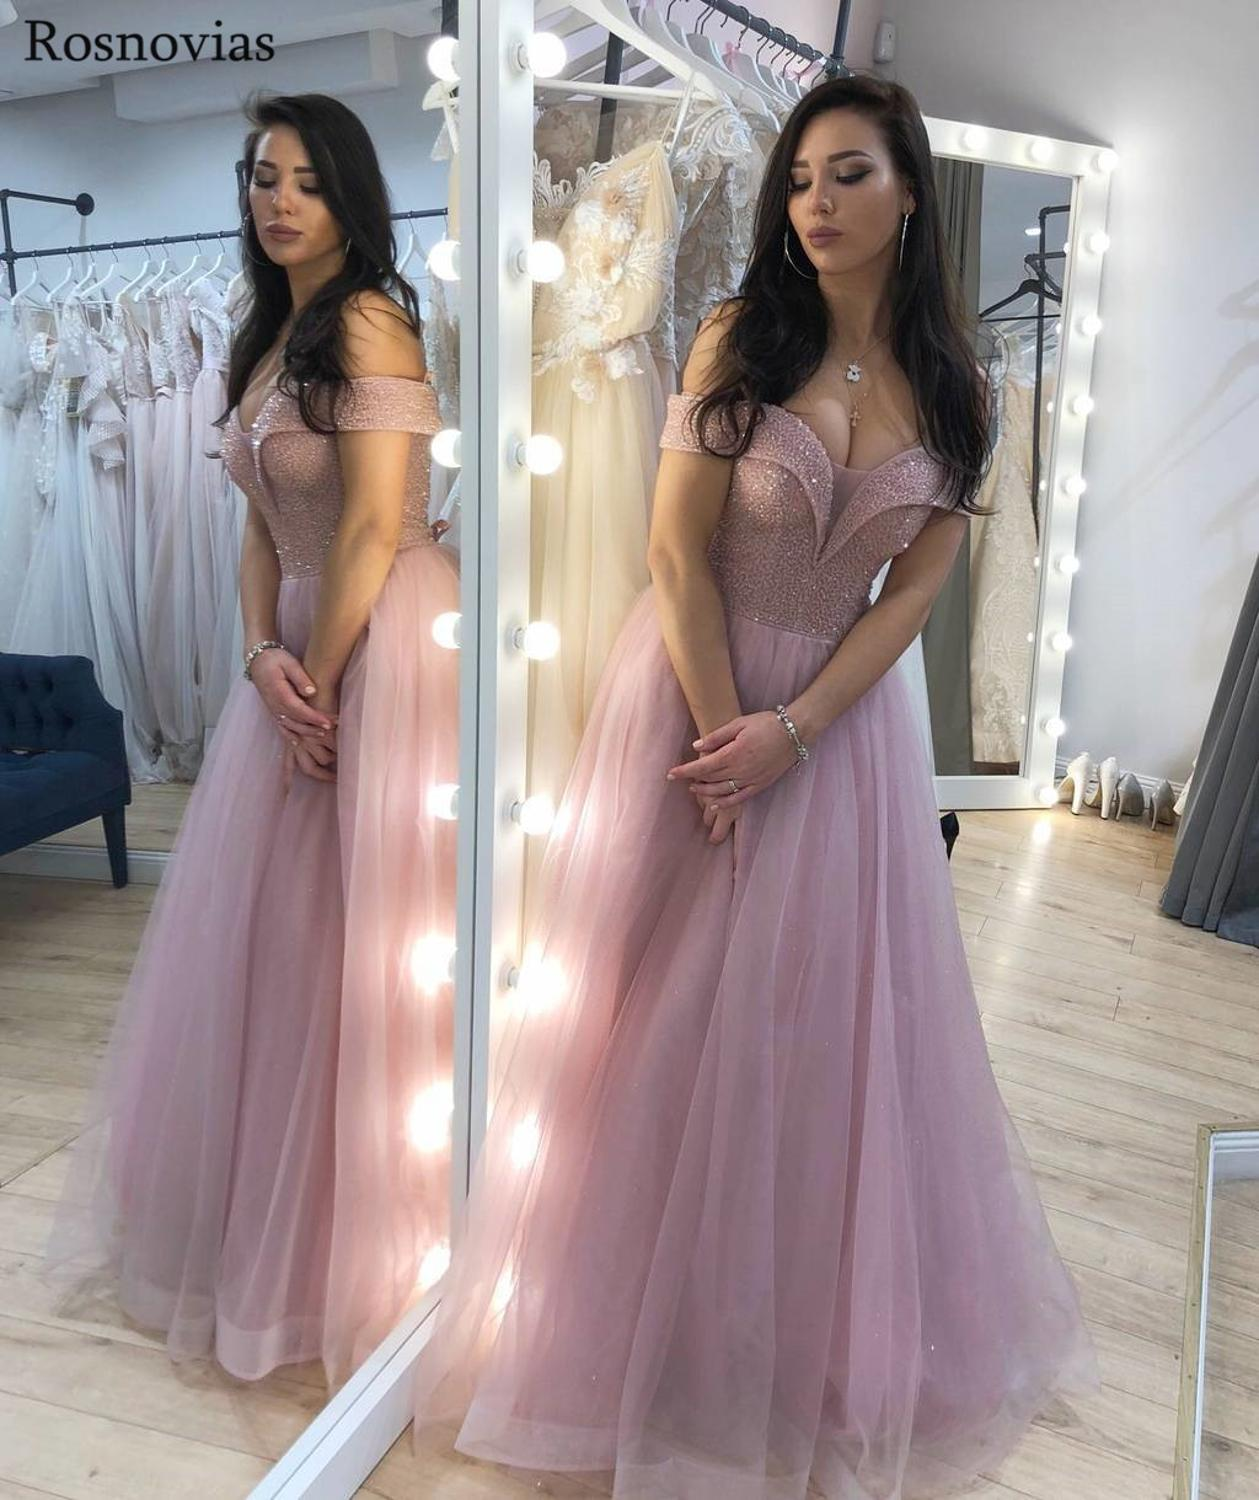 Off Shoulder Prom Dresses Long Zipper Back Sweep Train Beaded A Line Evening Party Dresses Formal Gowns Prom Dresses 2019 Custom